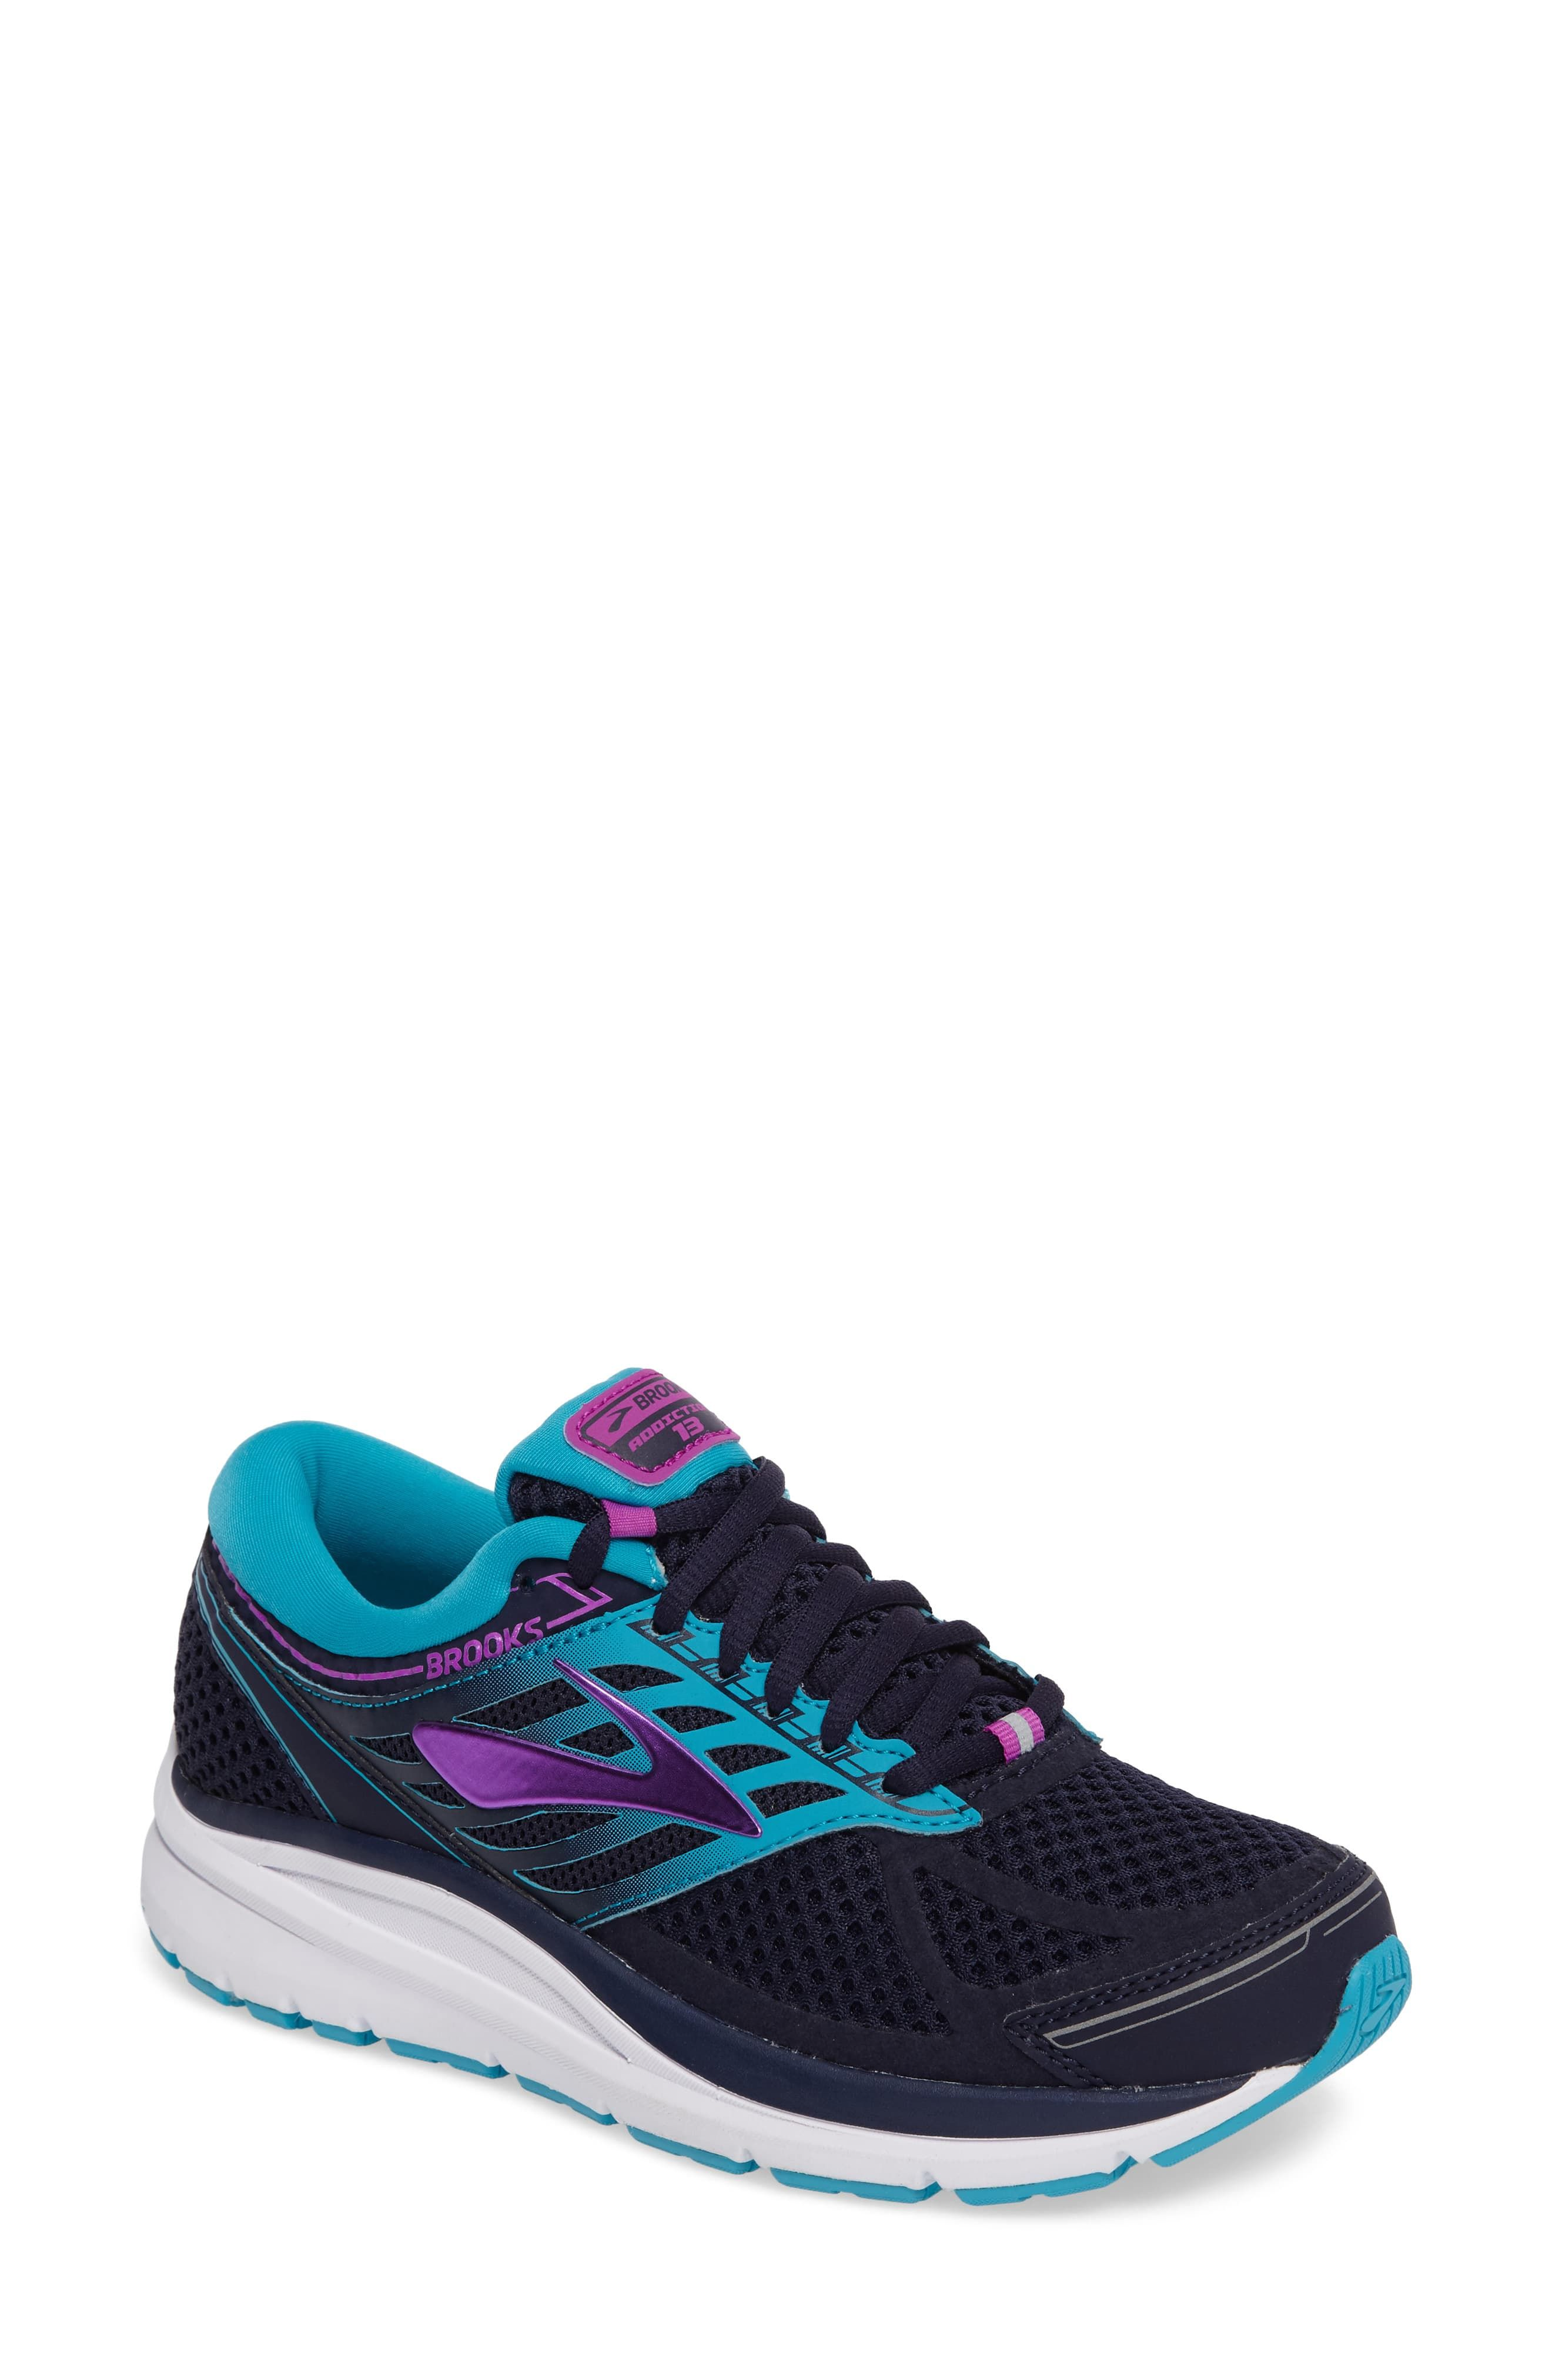 2018 shoes 100% quality various colors Women's Brooks Addiction 13 Running Shoe, Size 5 B - Grey in ...